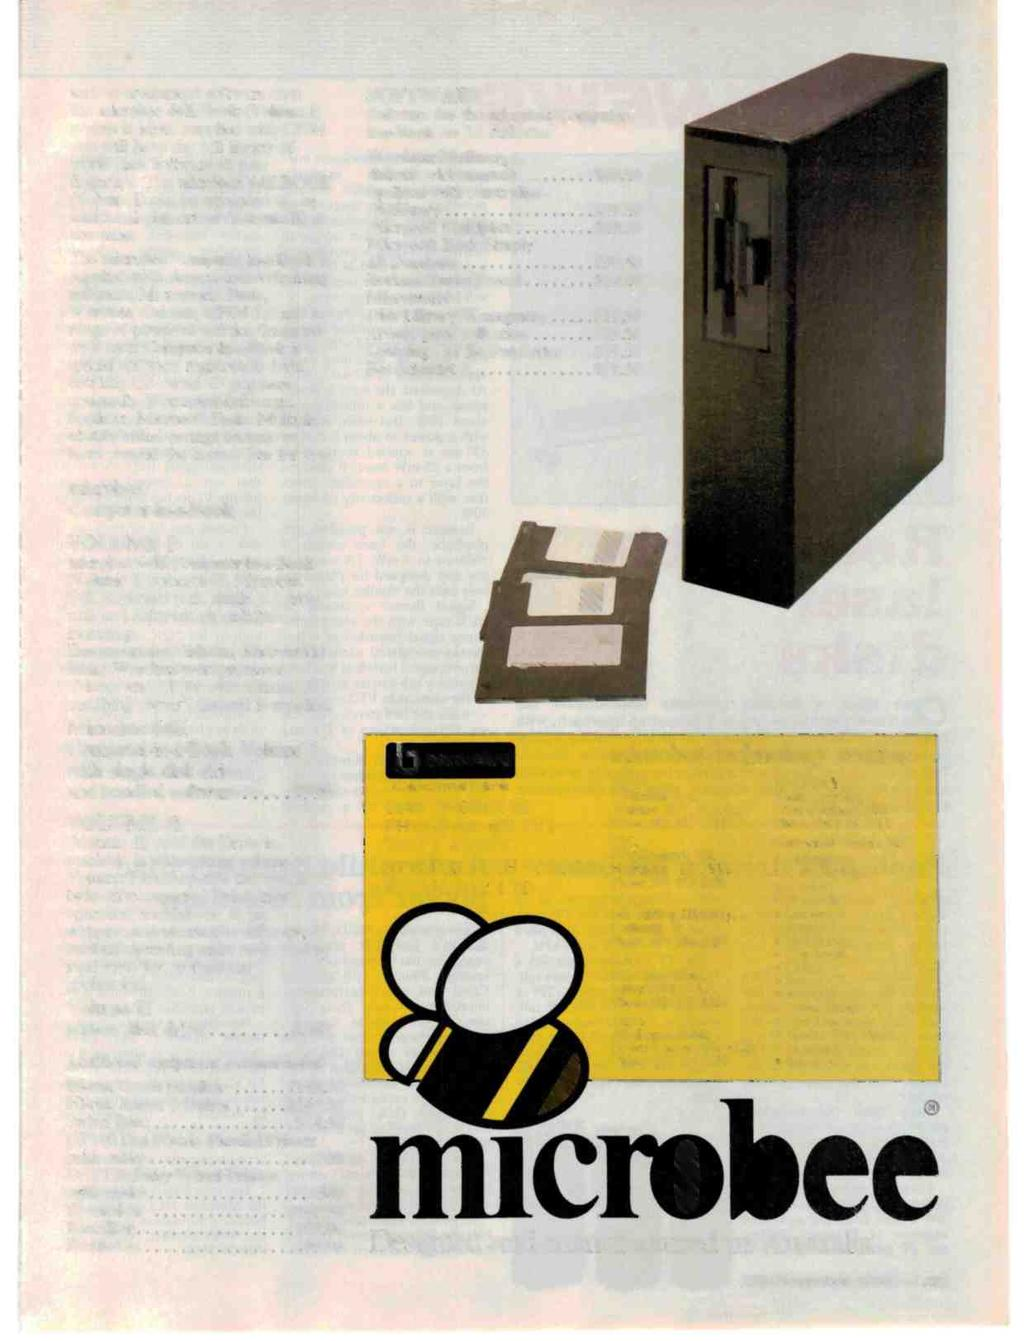 And Entertainment Software Then The Microbee 64K Book Volume II System Is Ideal